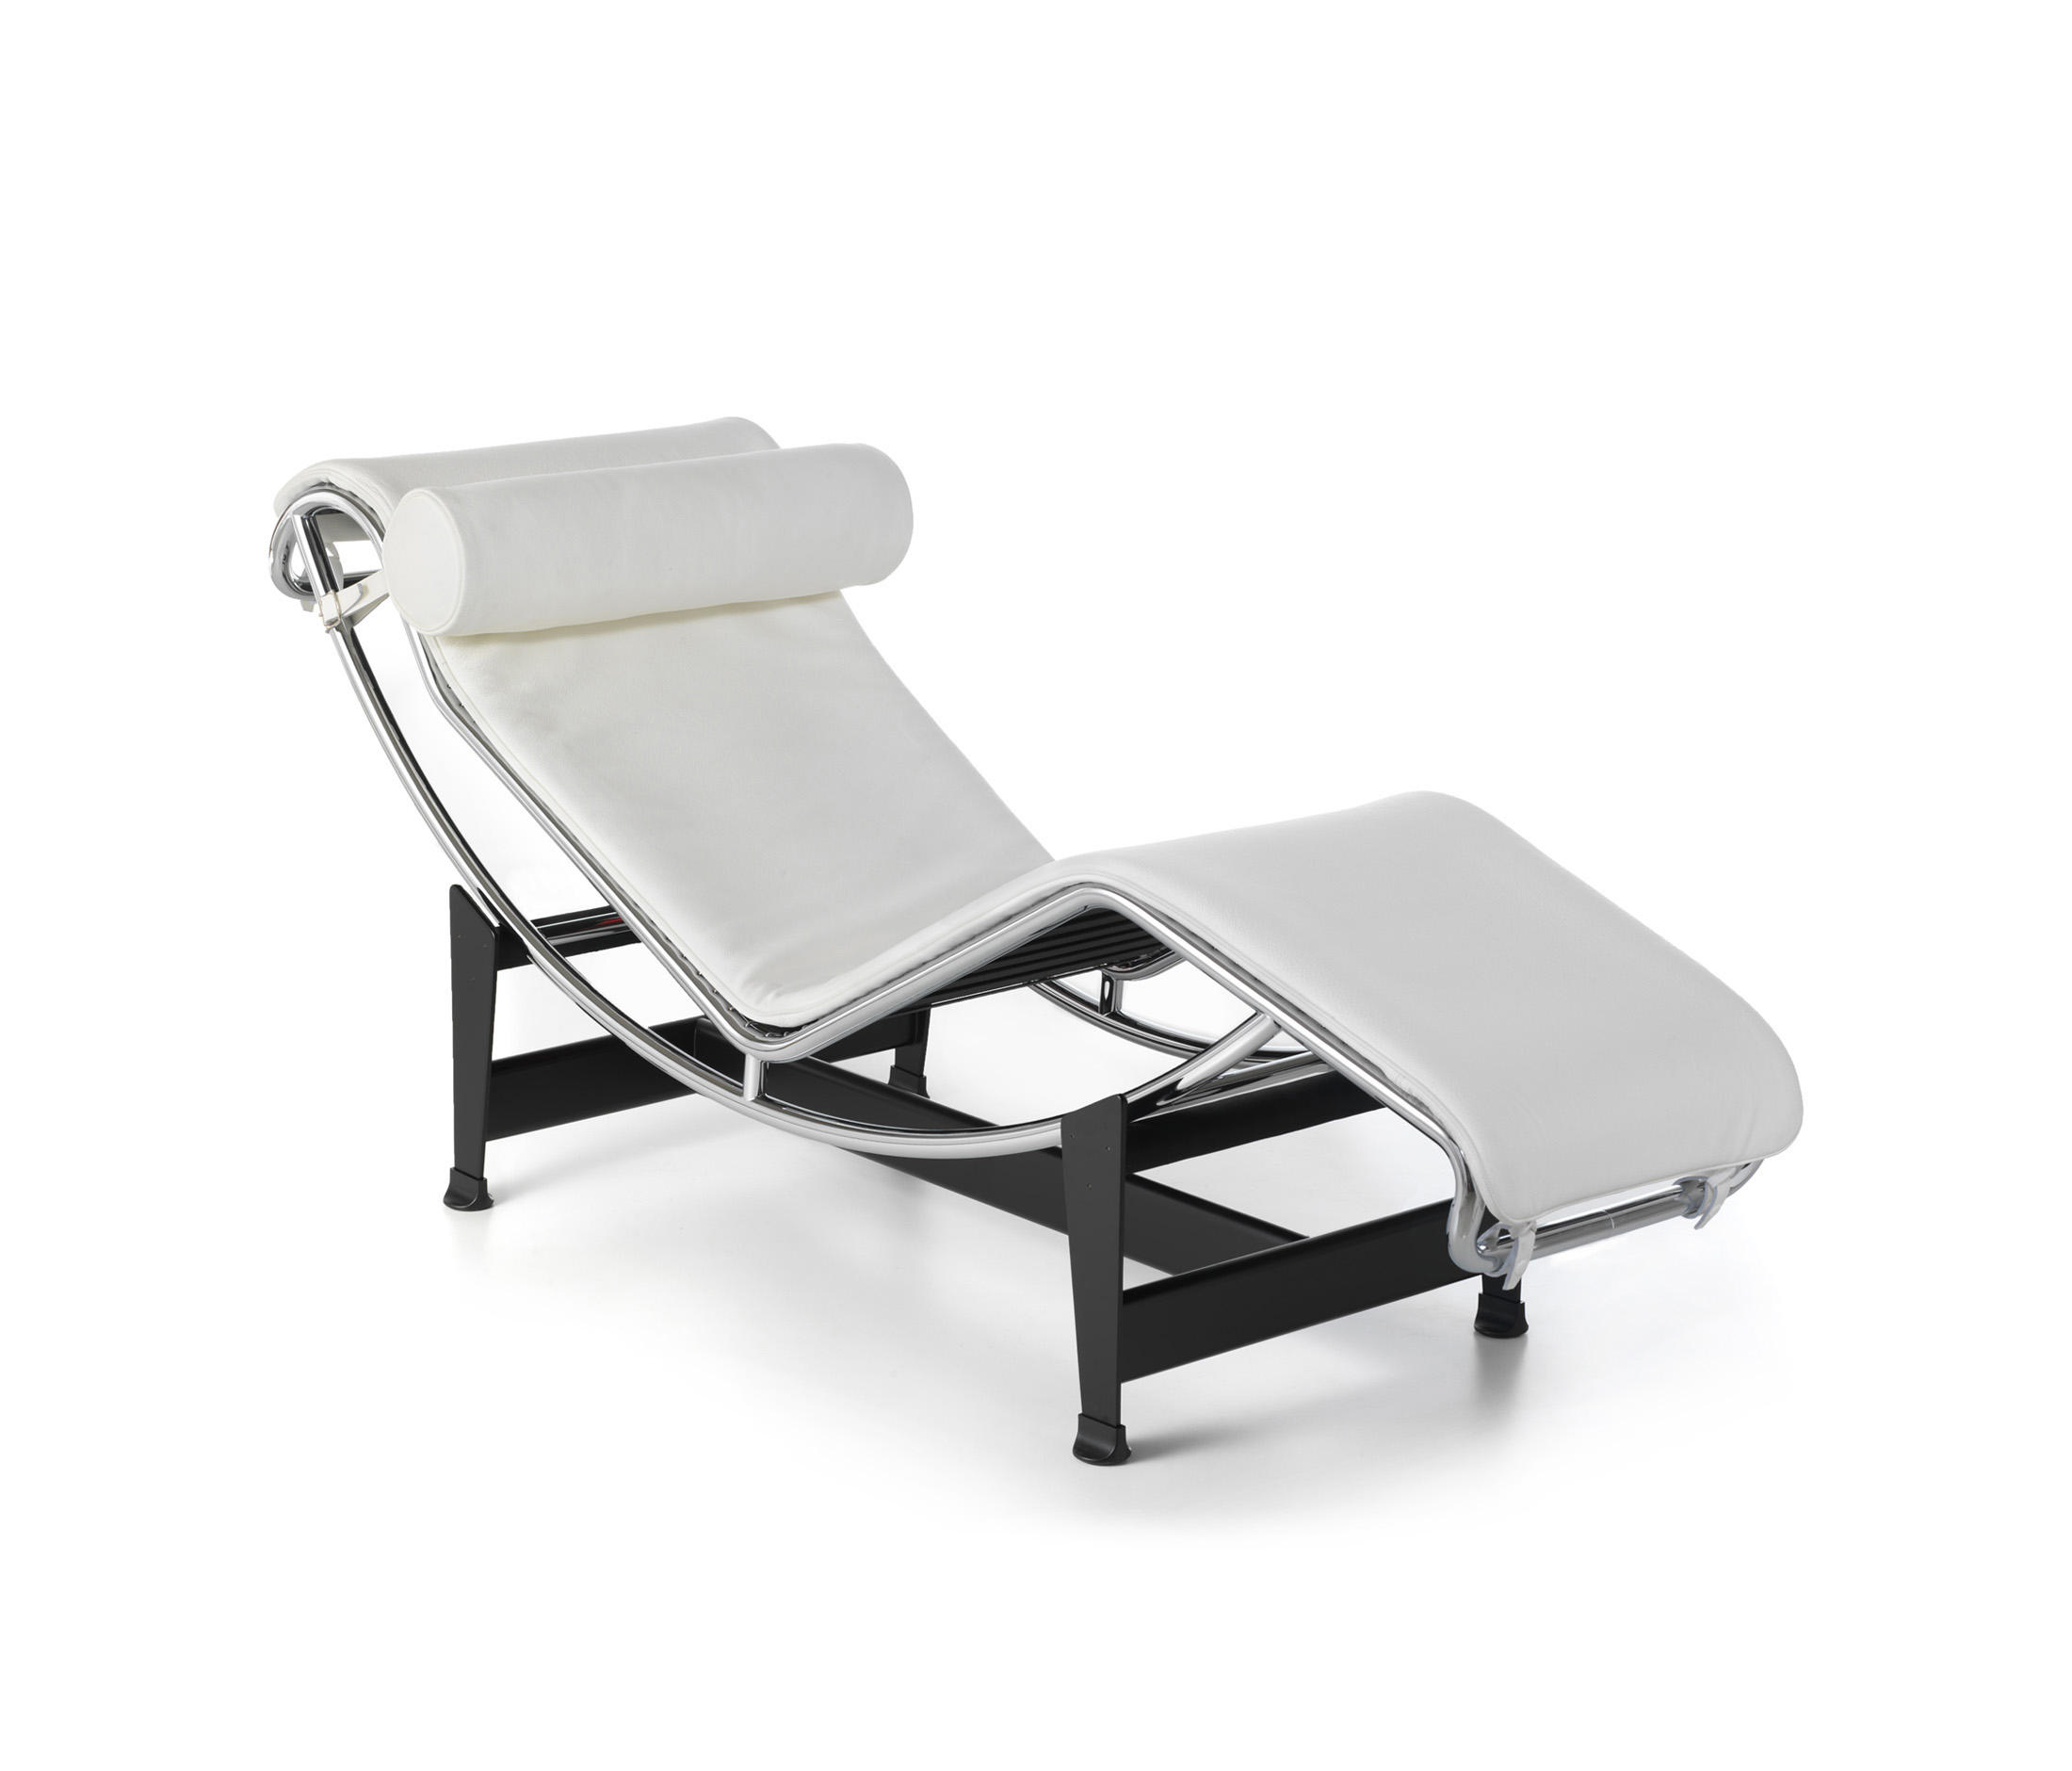 mid chaise lounge modern product le style chairish corbusier chair century